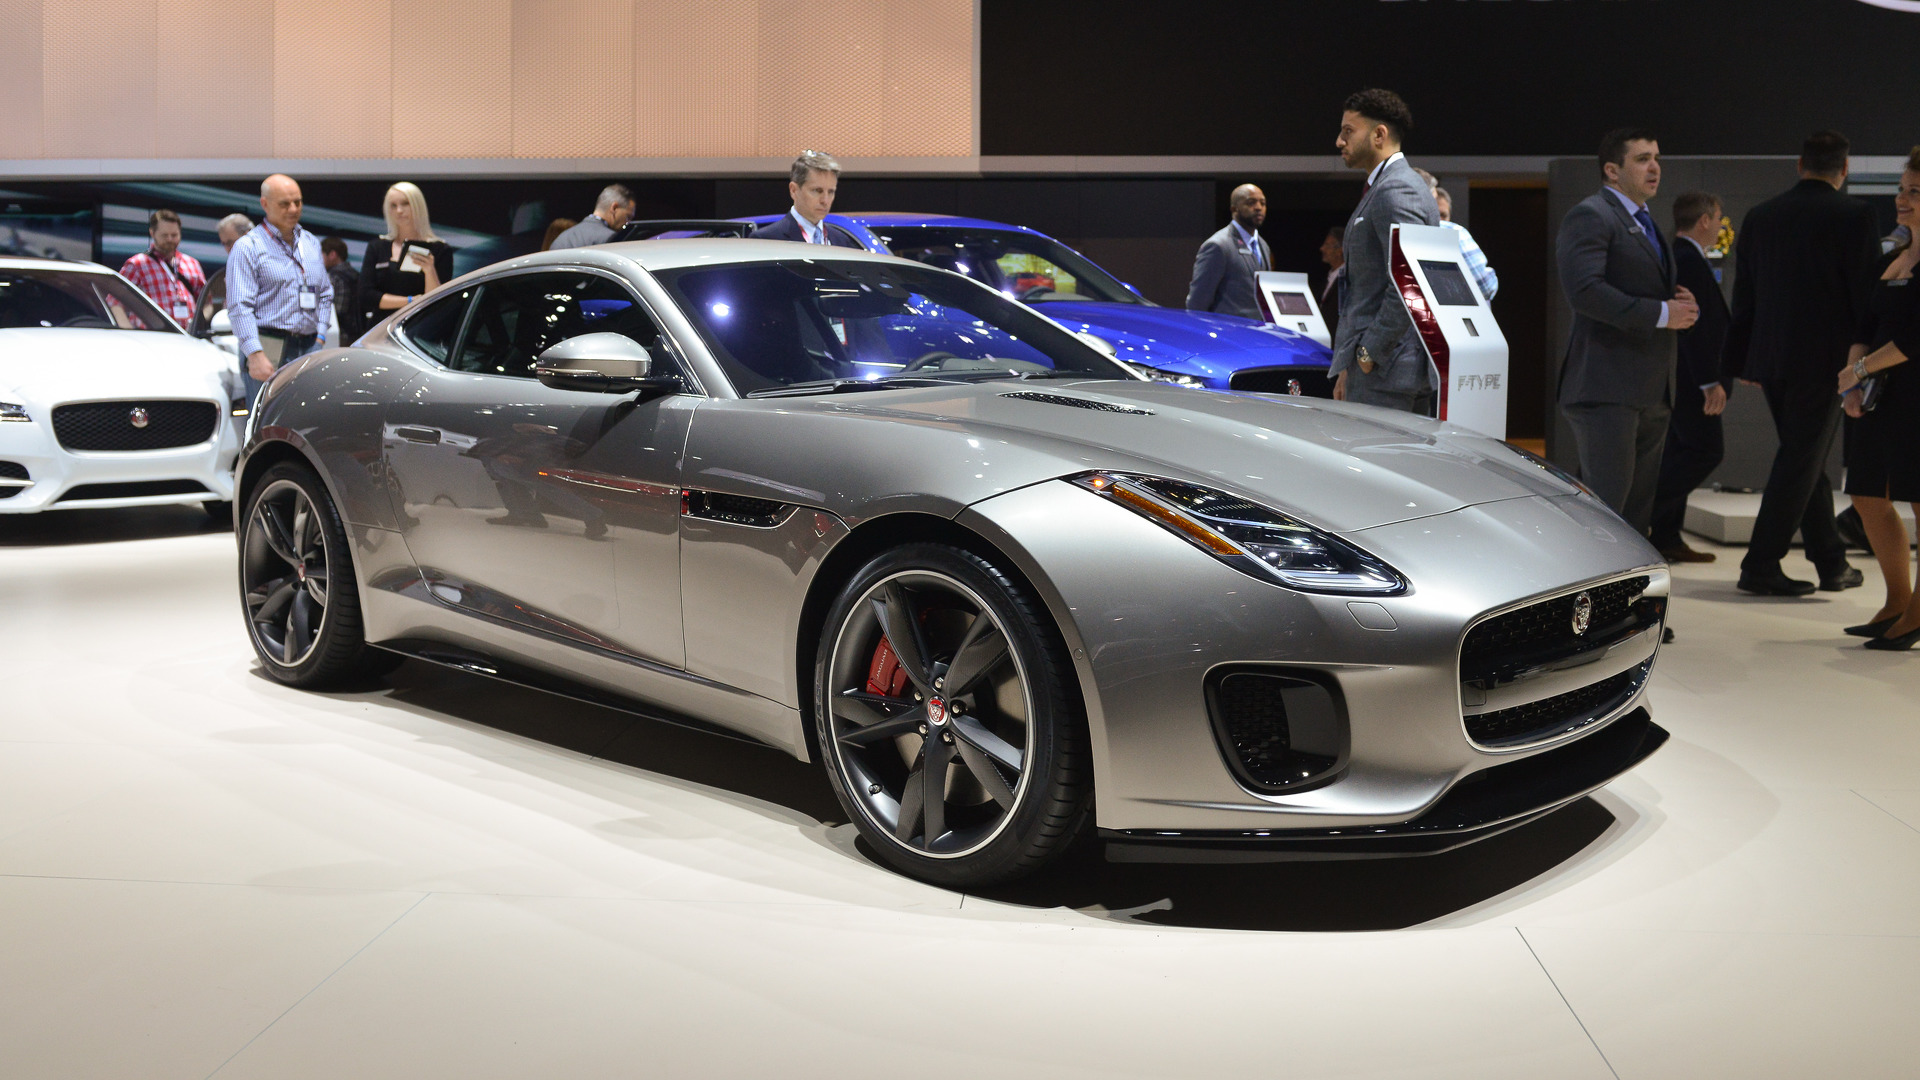 2018 jaguar f type becomes a tamer kitty with new 2 0 liter engine. Black Bedroom Furniture Sets. Home Design Ideas